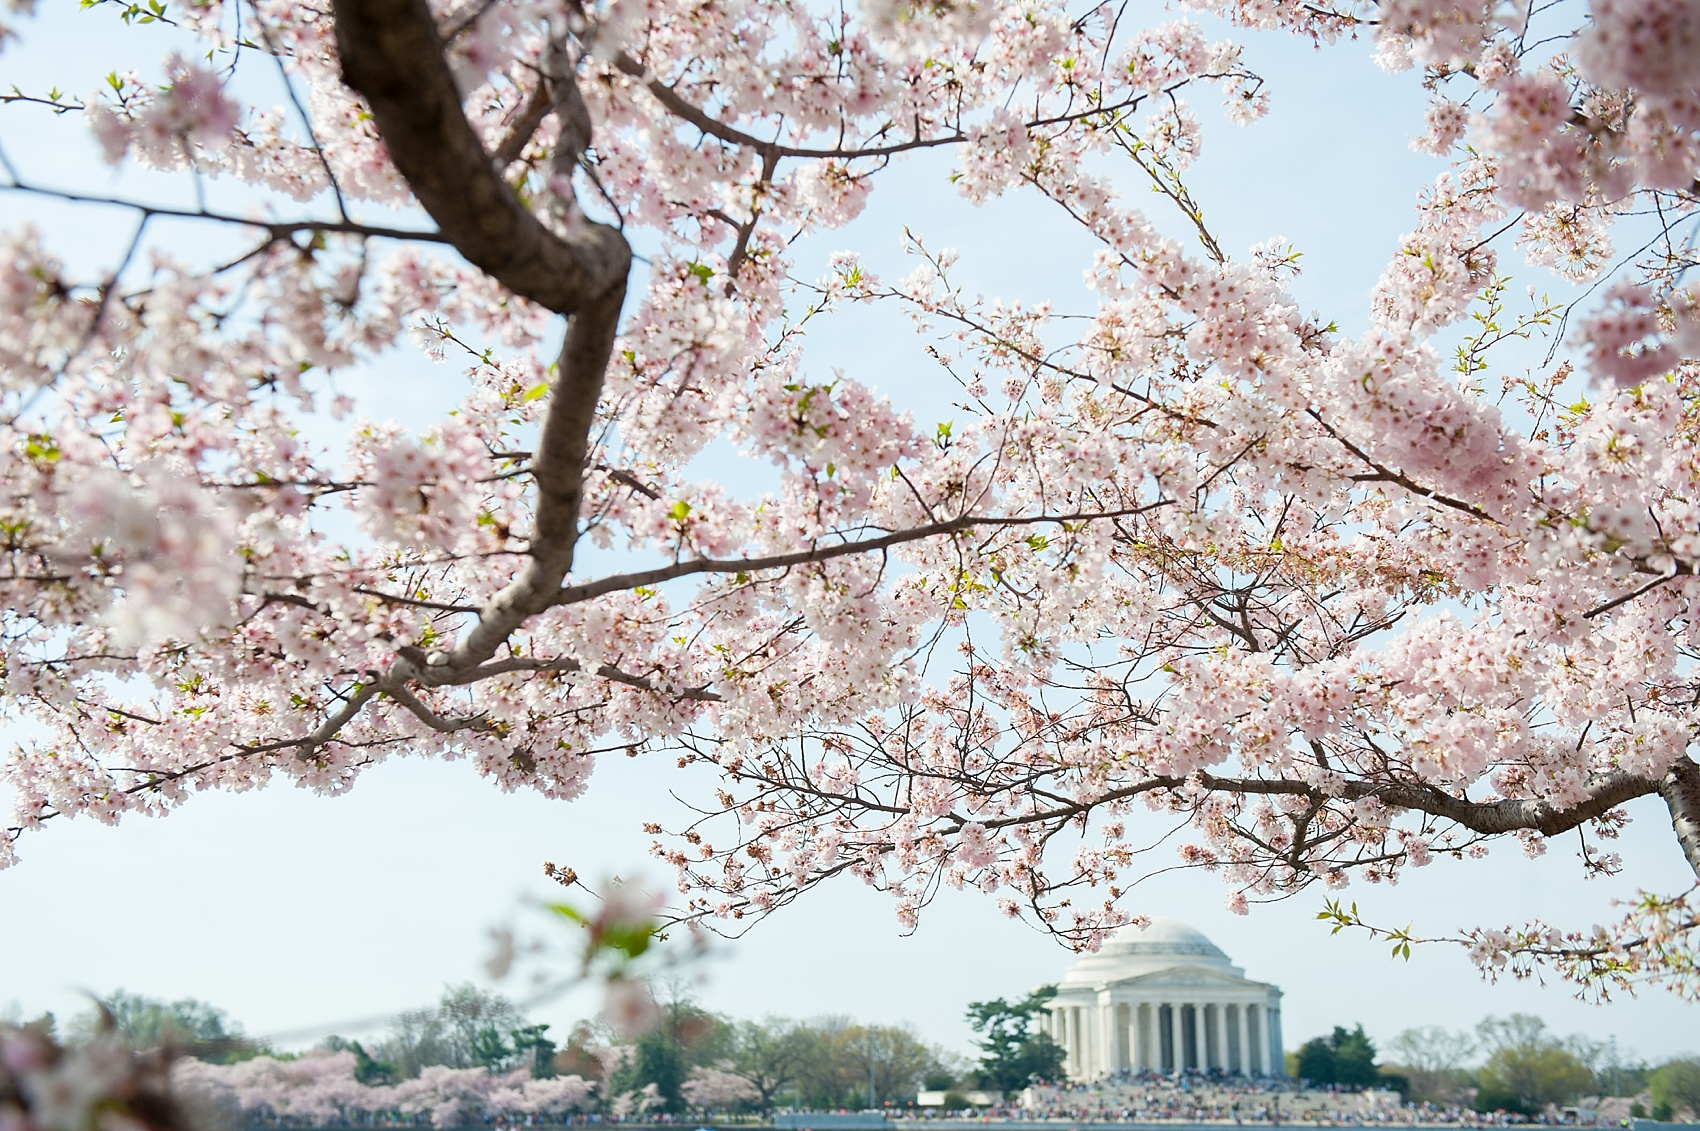 Cherry Blossom Festival in Washington, DC. Photos by destination wedding photographer, Mikkel Paige Photography.